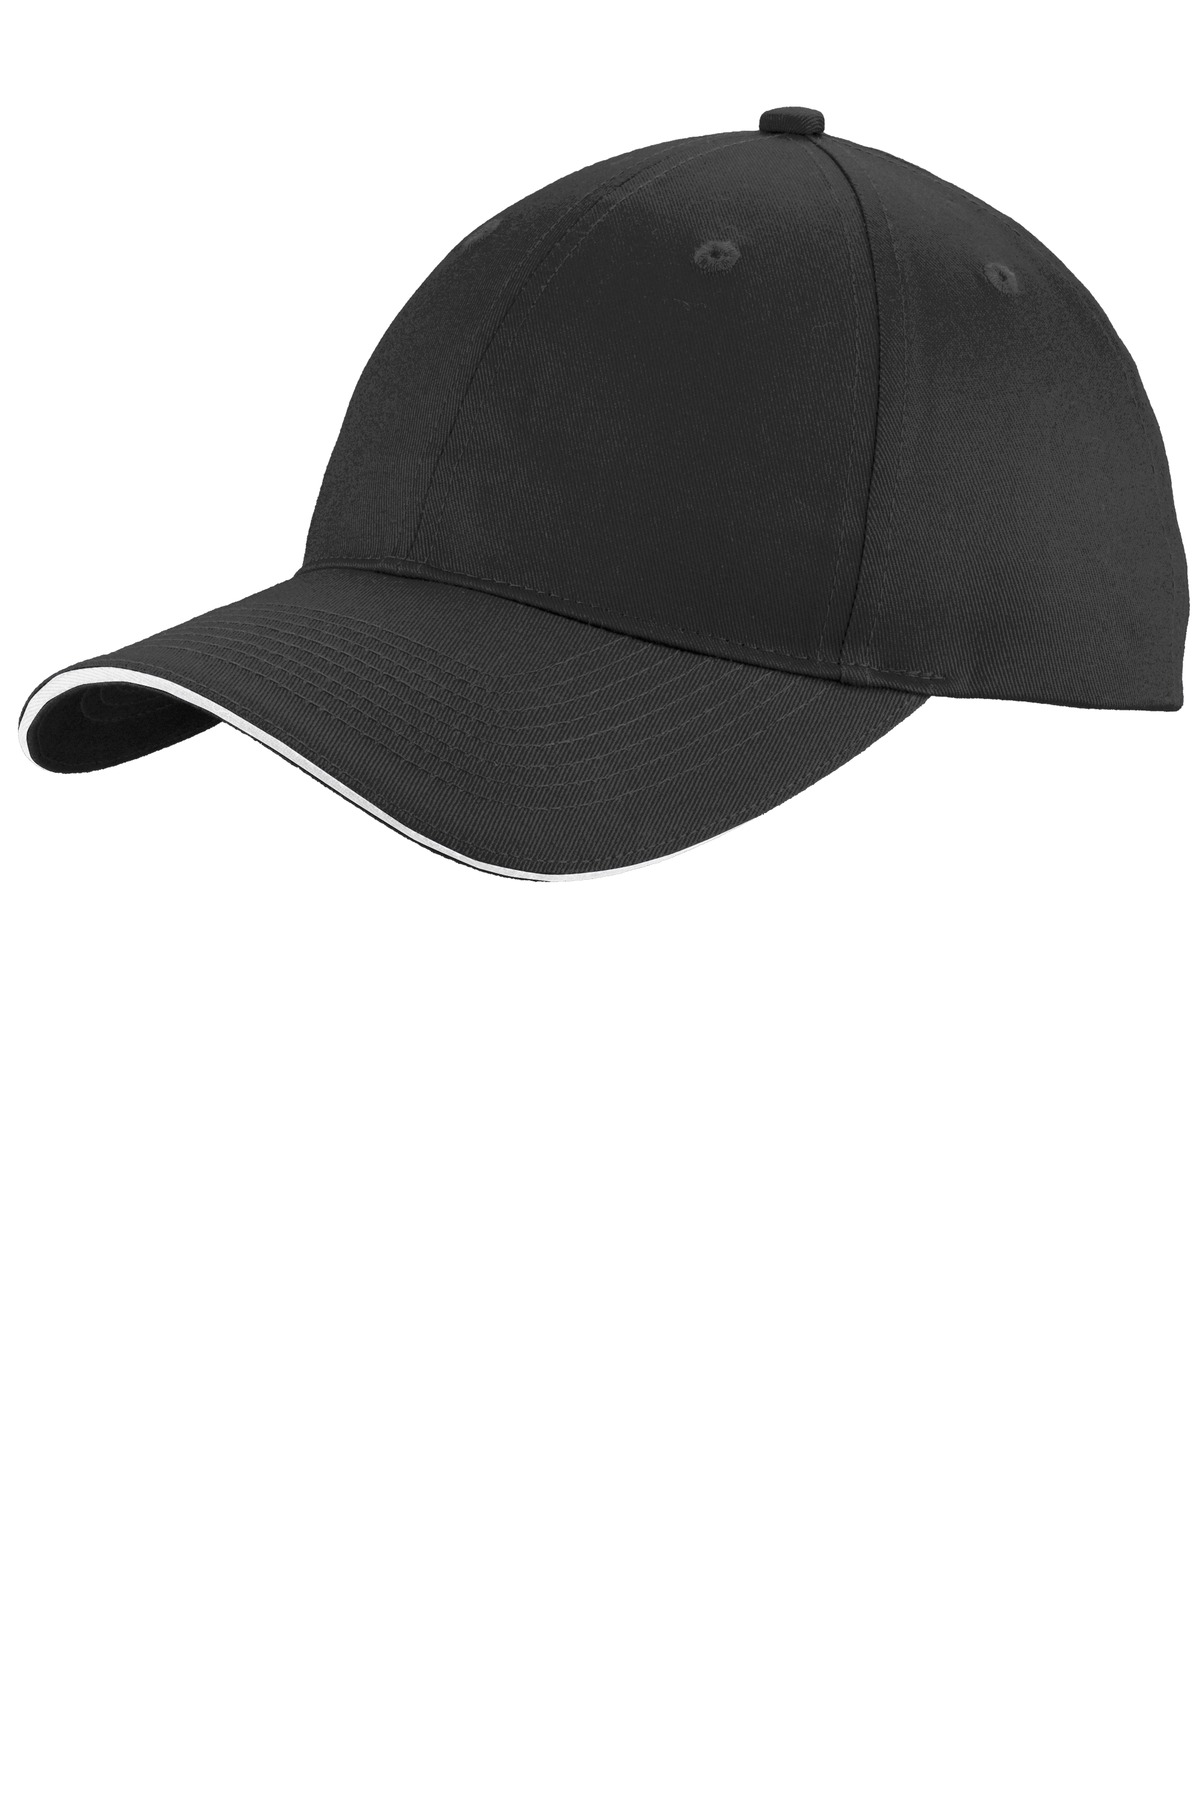 Port & Company ®  Unstructured Sandwich Bill Cap. C919 - Black/ White